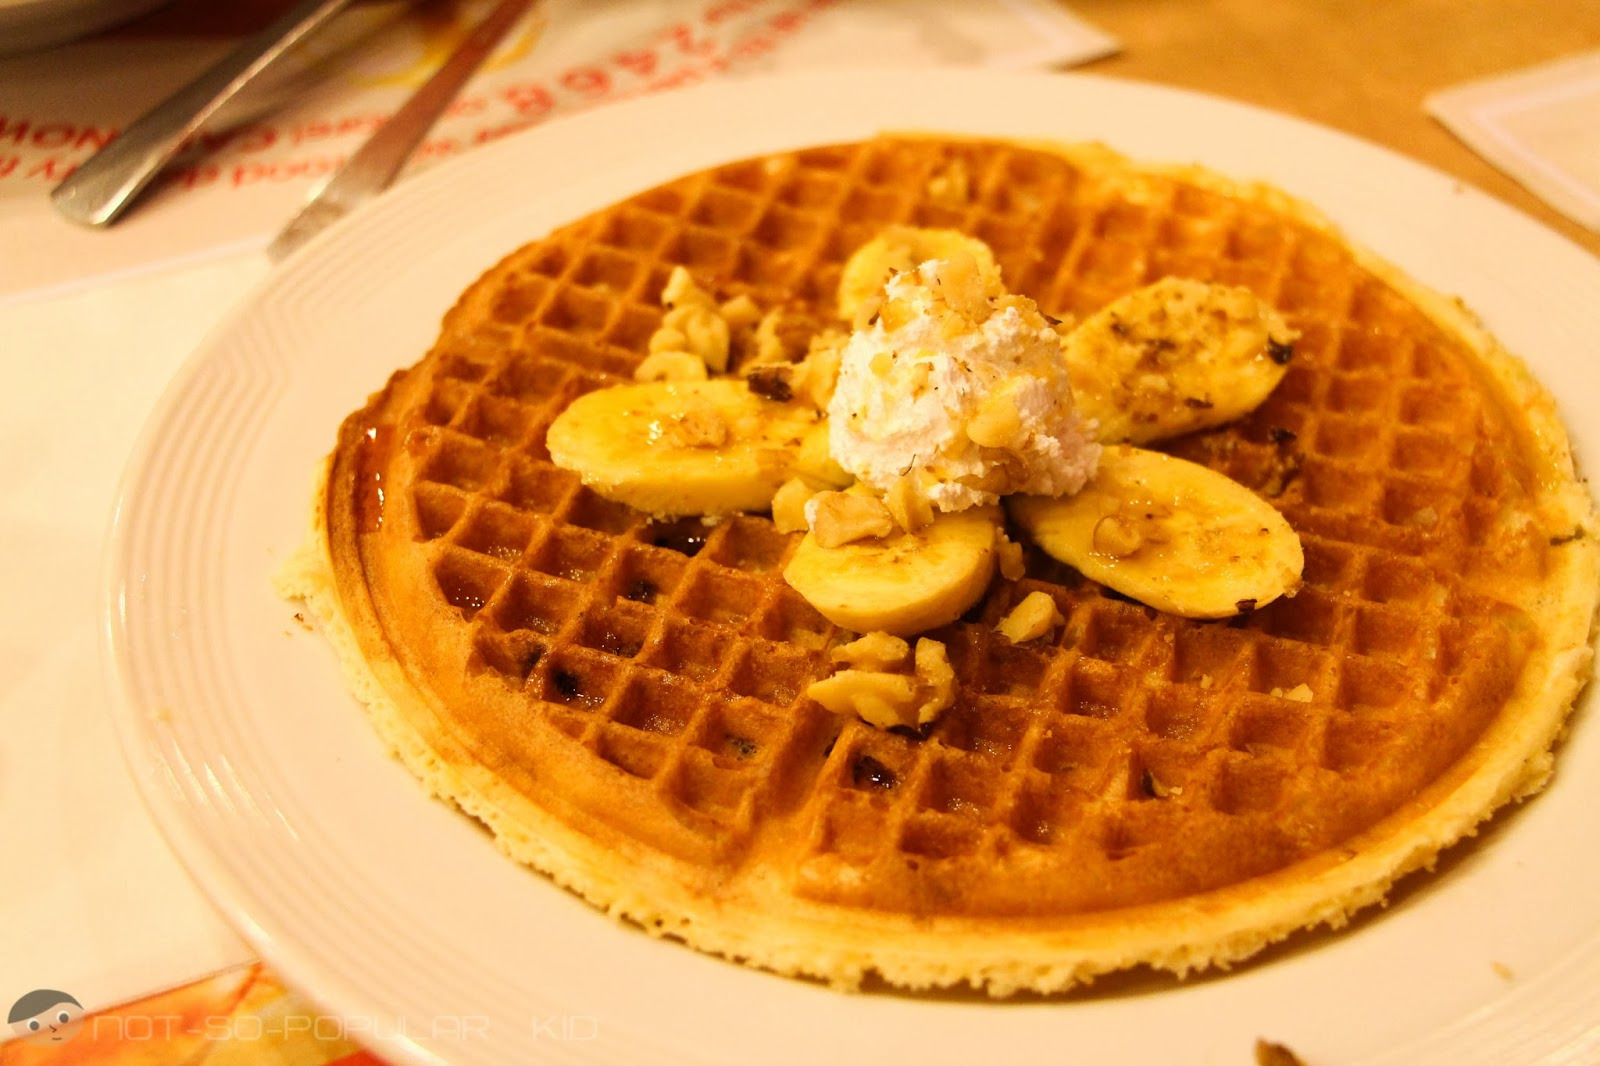 More than Just Waffles in PANCAKE HOUSE - A Taste of Home! - A Not-So ...